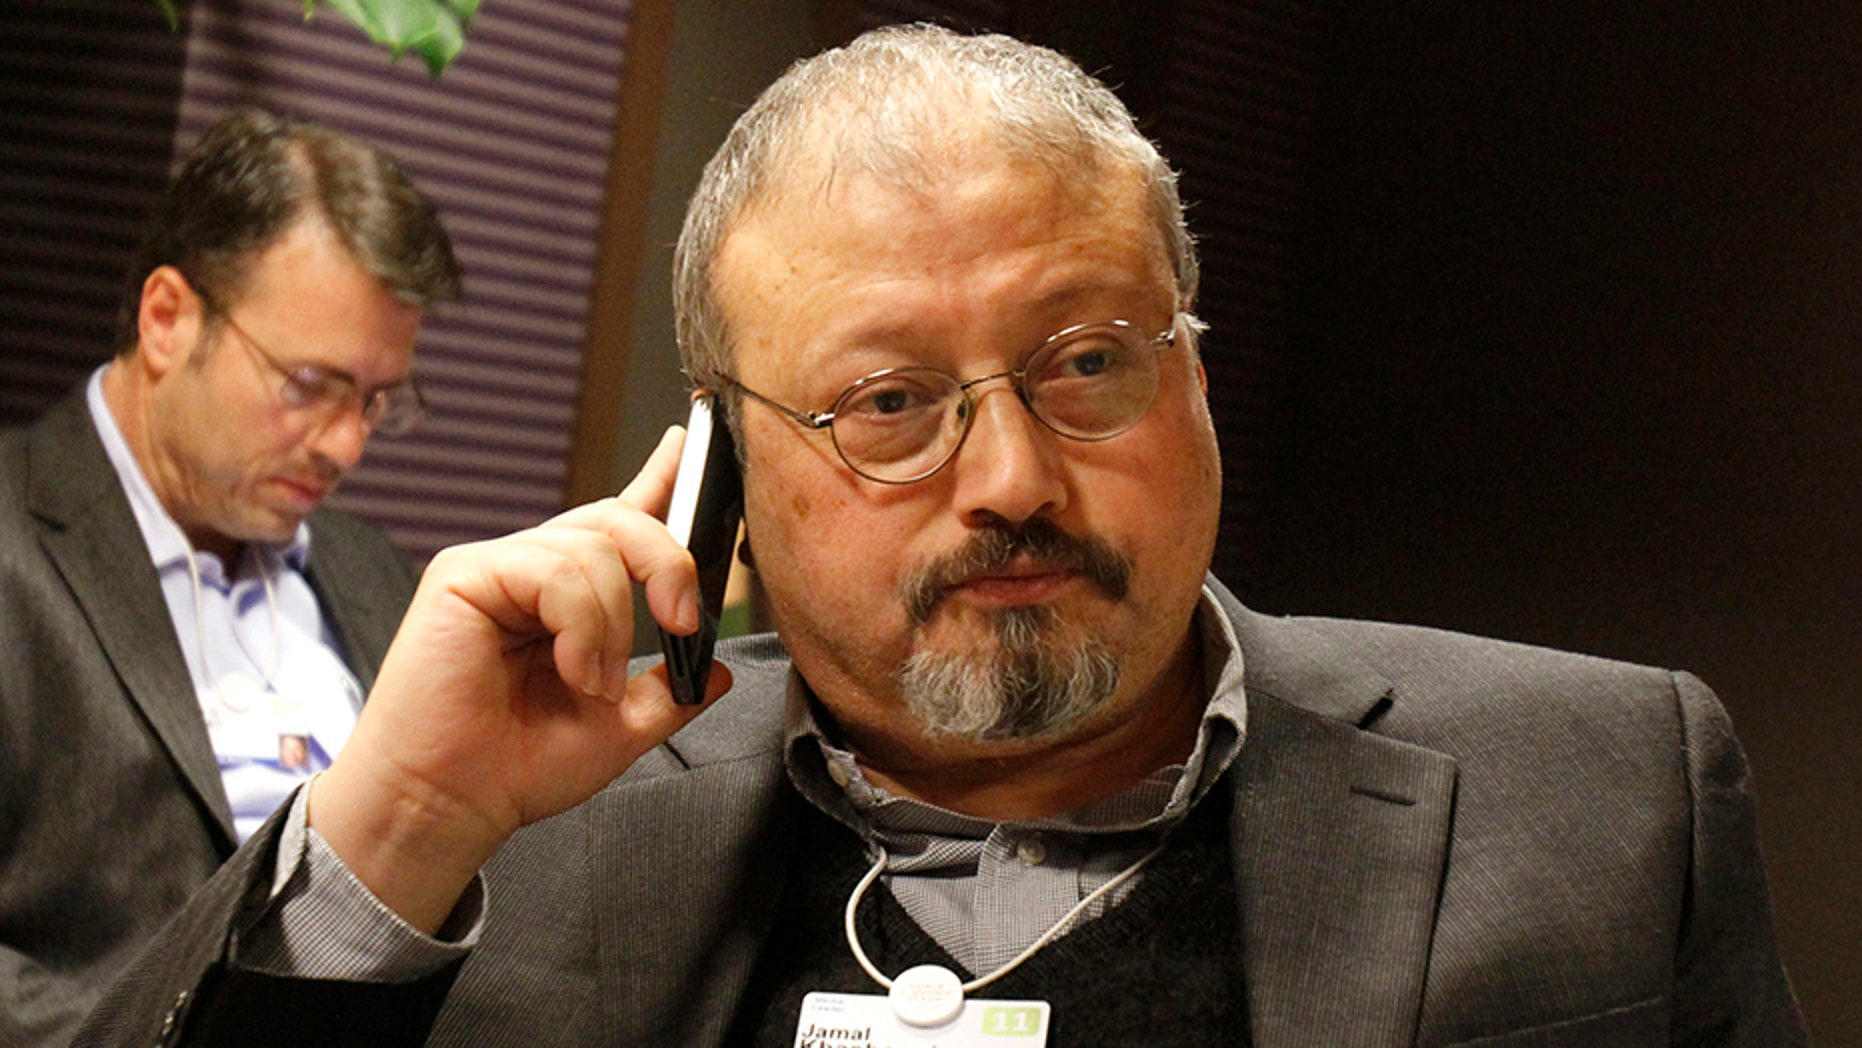 Turkey to search Saudi consulate for Khashoggi's disappearance, Foreign Ministry says